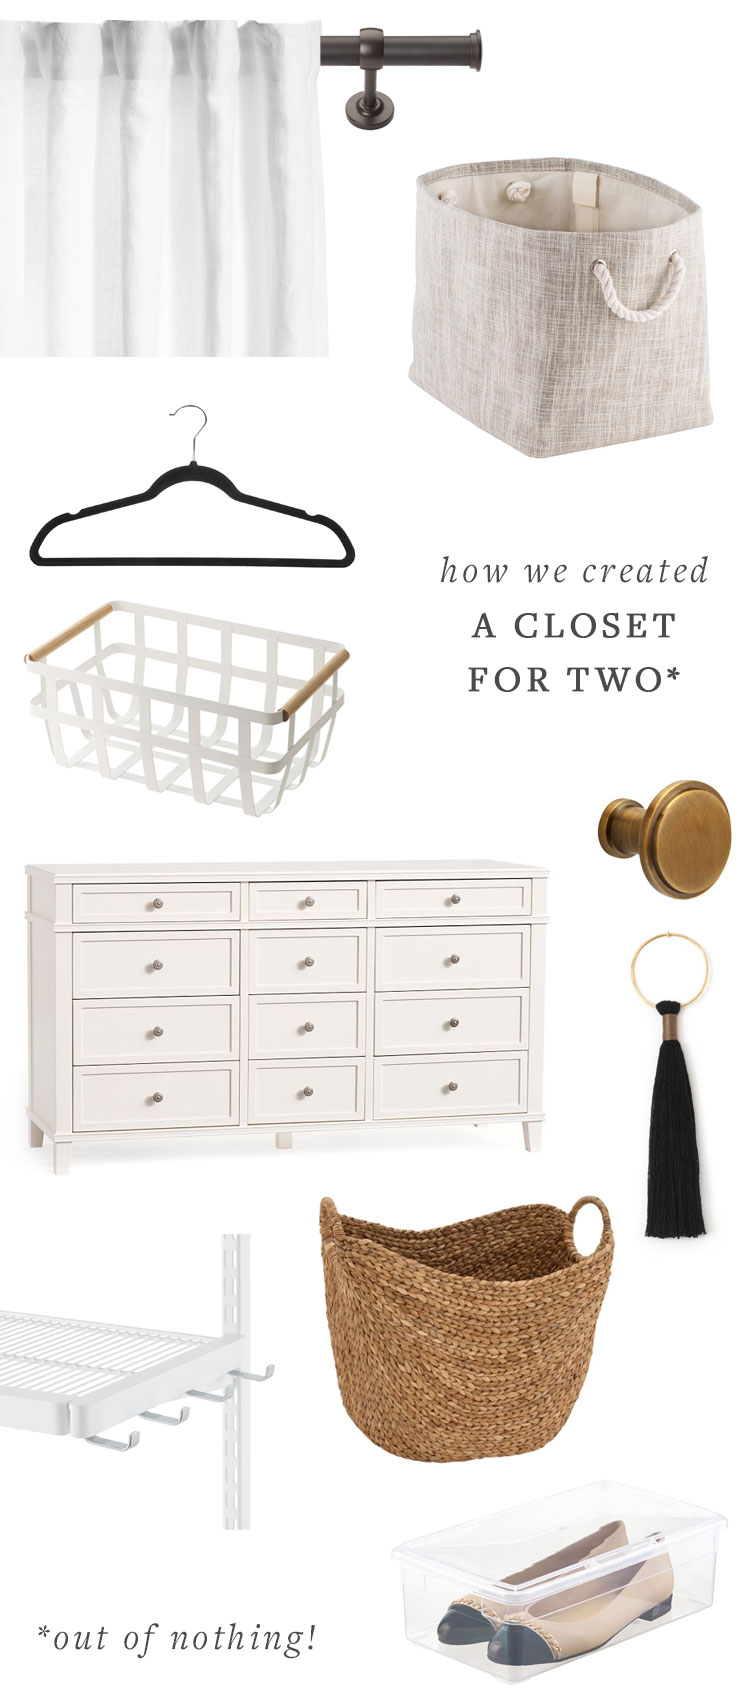 our bedroom makeover details, how we added a closet to a small space using elfa shelving from the container store, @potterybarn dresser, @barnandwillow custom curtains, and baskets from @allmodern. get the details and full source list on jojotastic.com